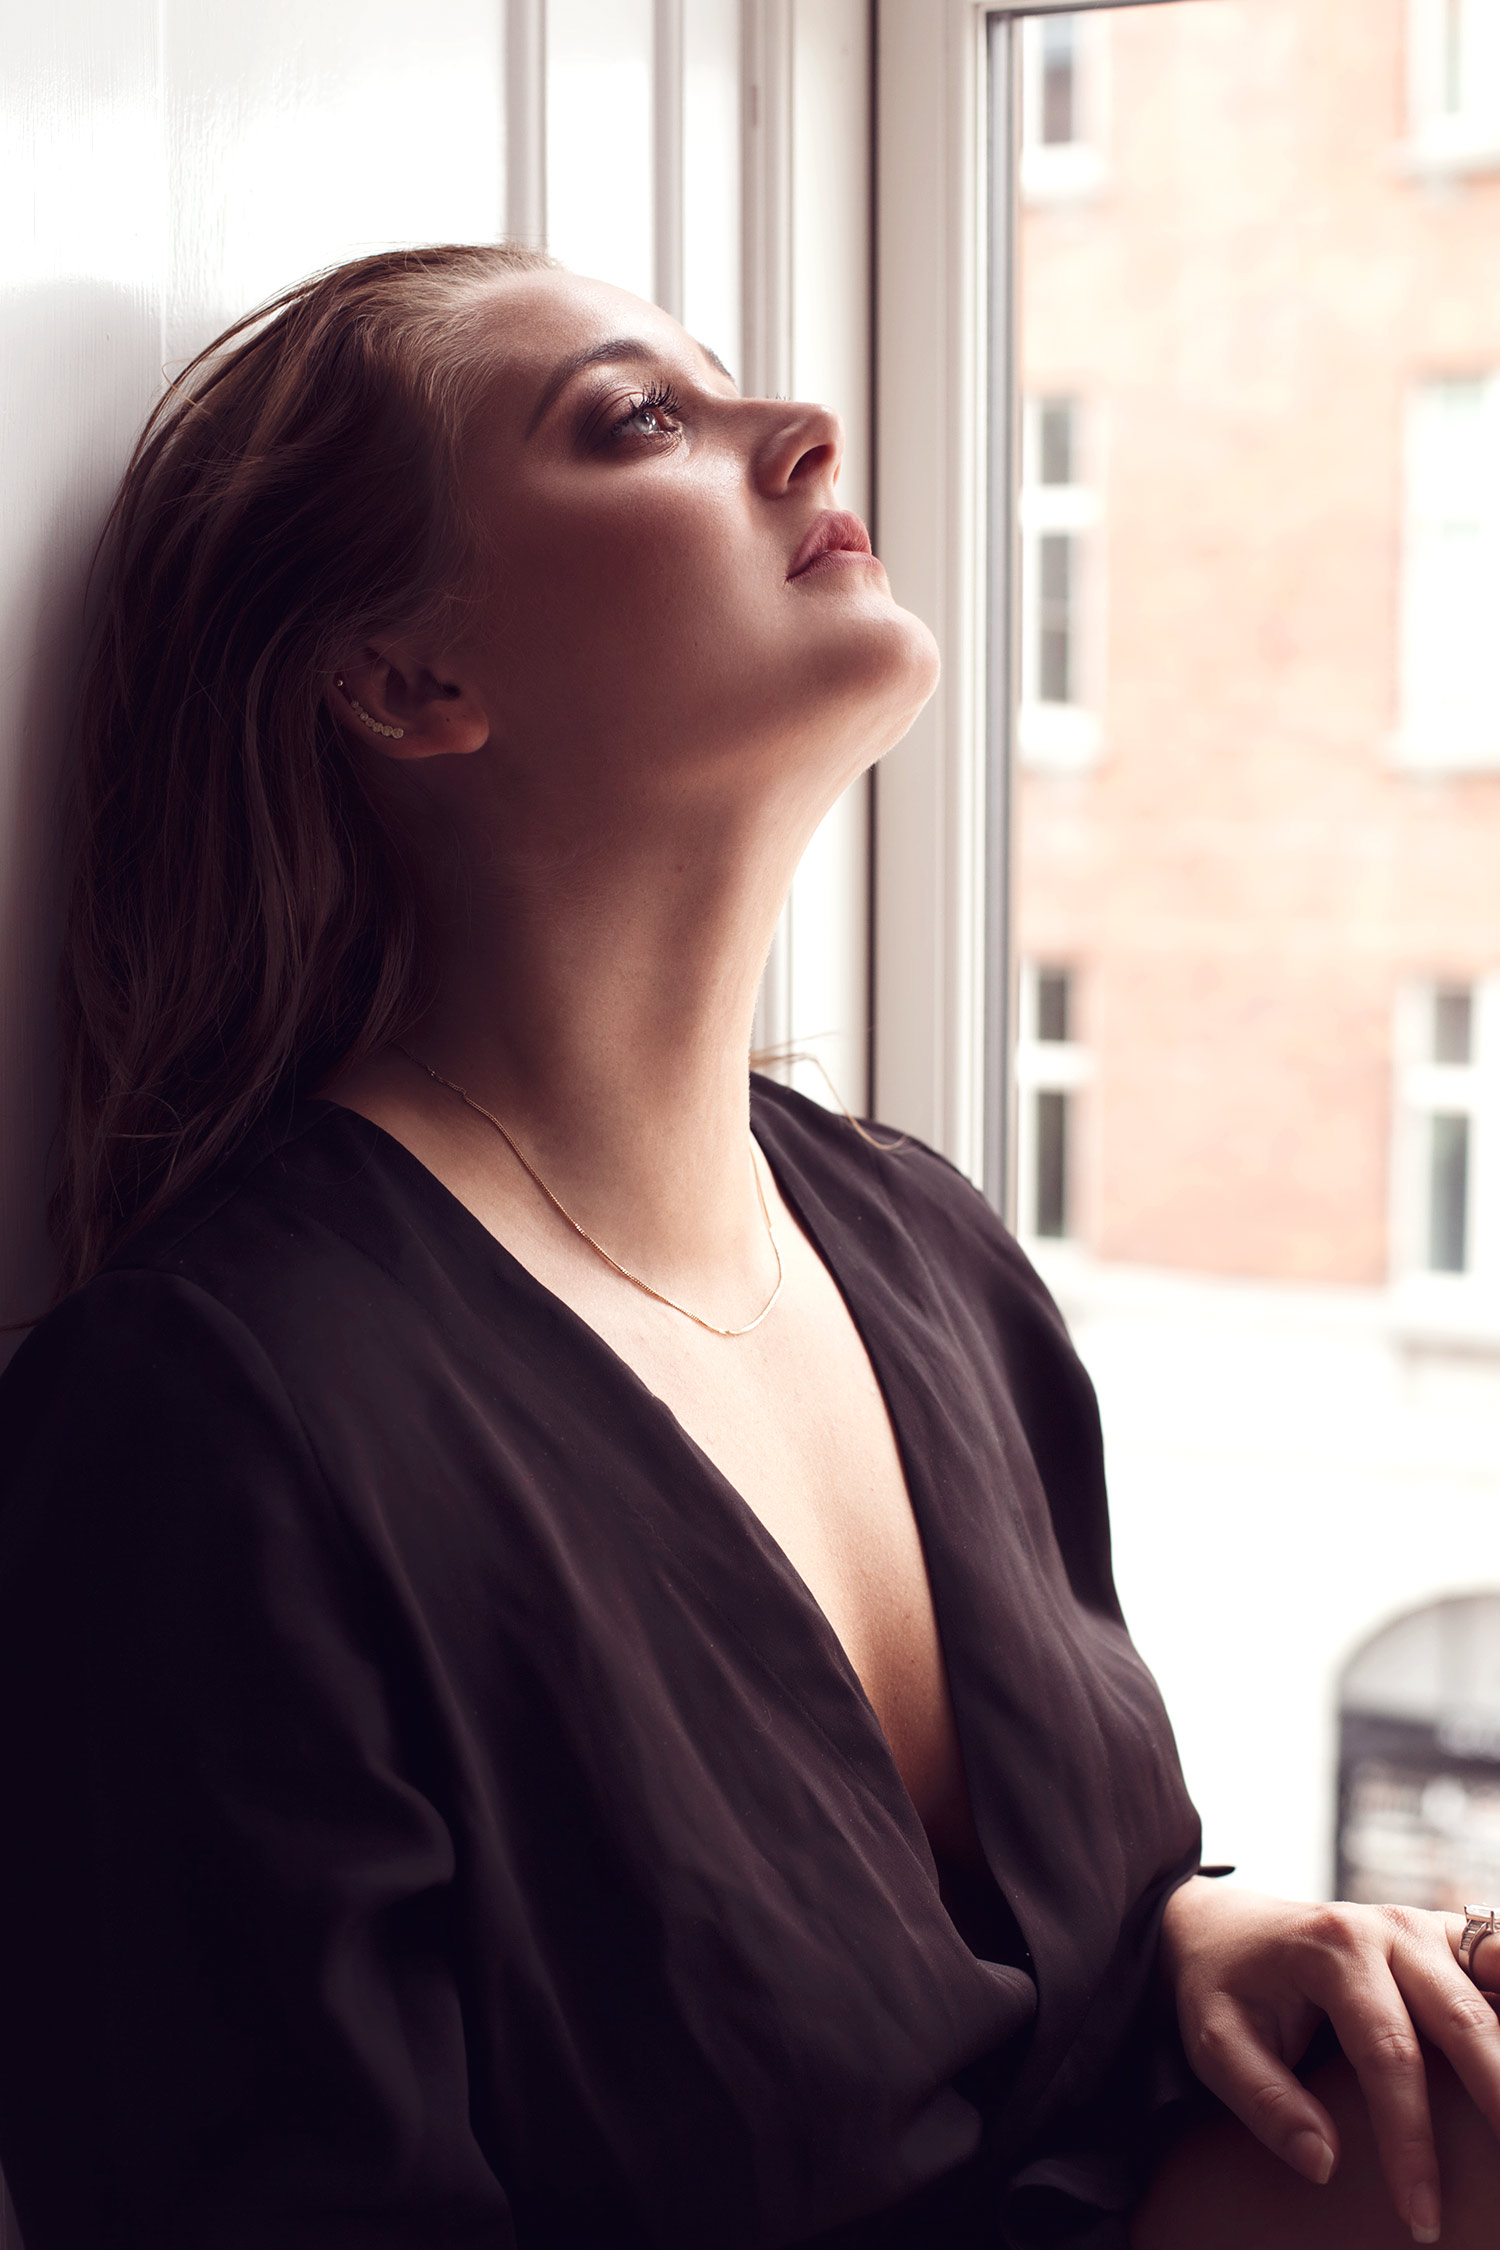 It is incredible what you can do with just a bit of space. These windows were perfect for an intimate series of photos inspired by the beautiful images of French actress Brigitte Bardot posing in windows.